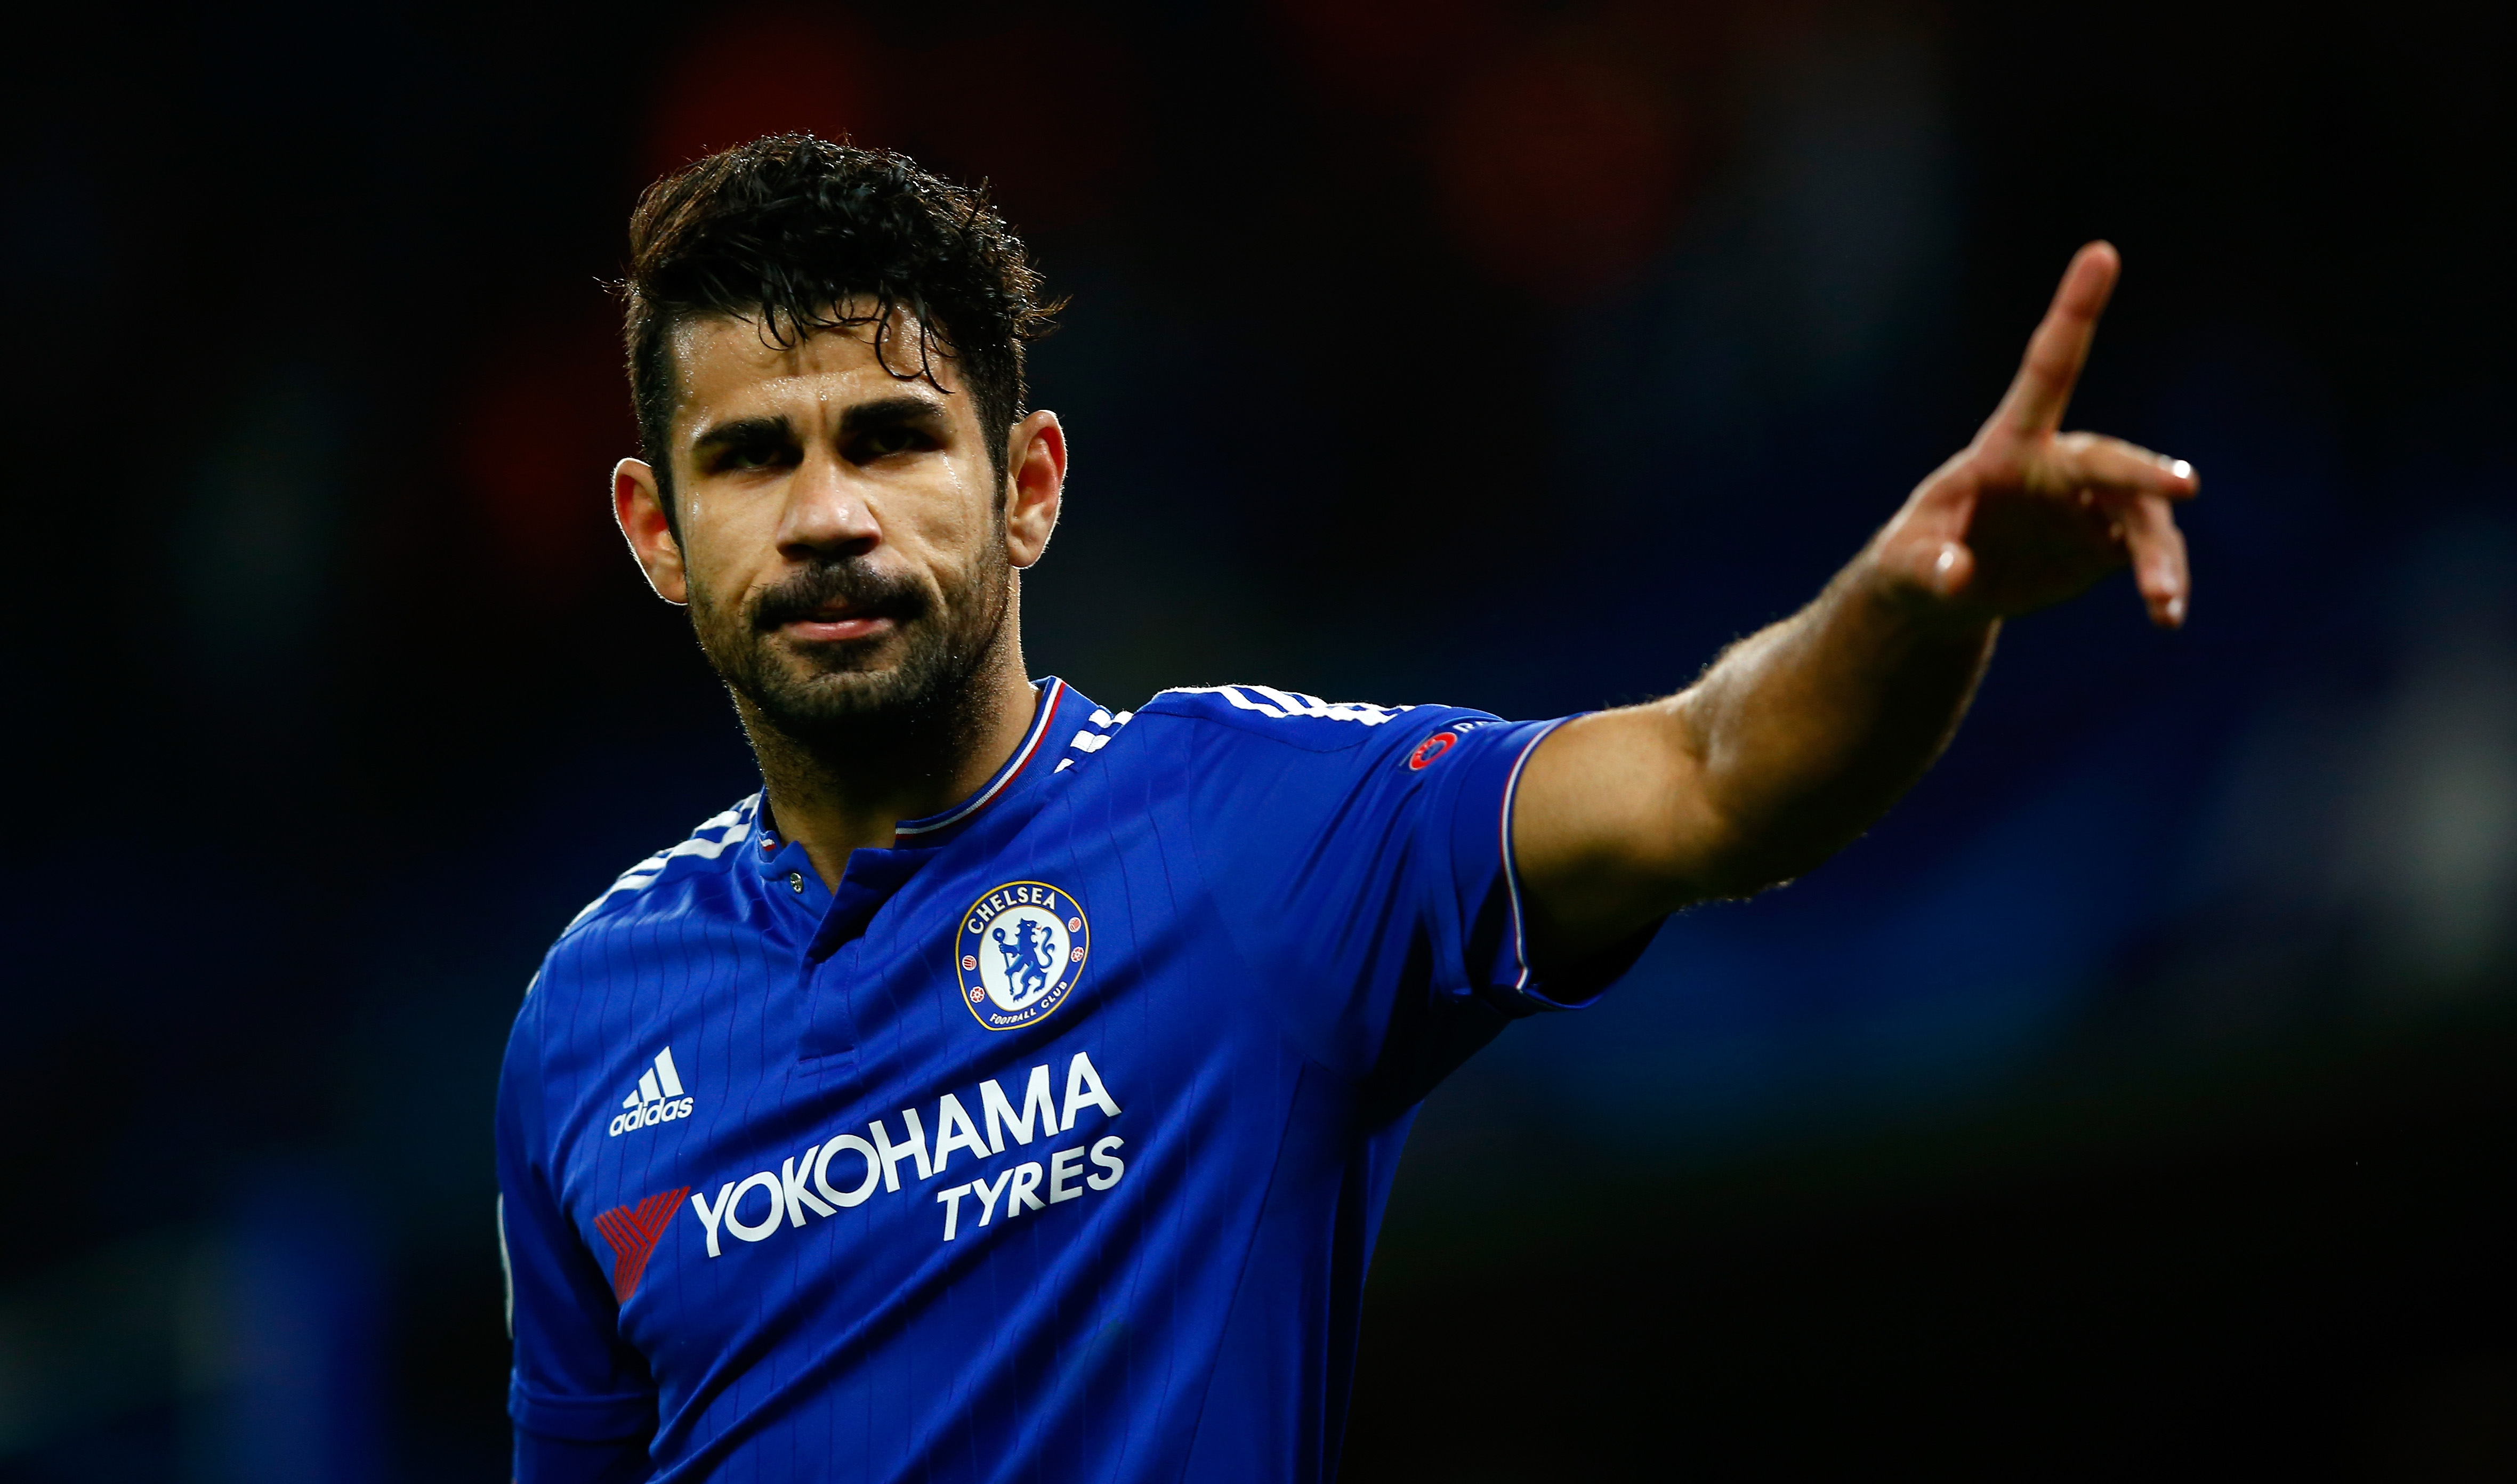 Barcelona legend Rivaldo gives transfer advice to Diego Costa after Antonio Conte bust-up